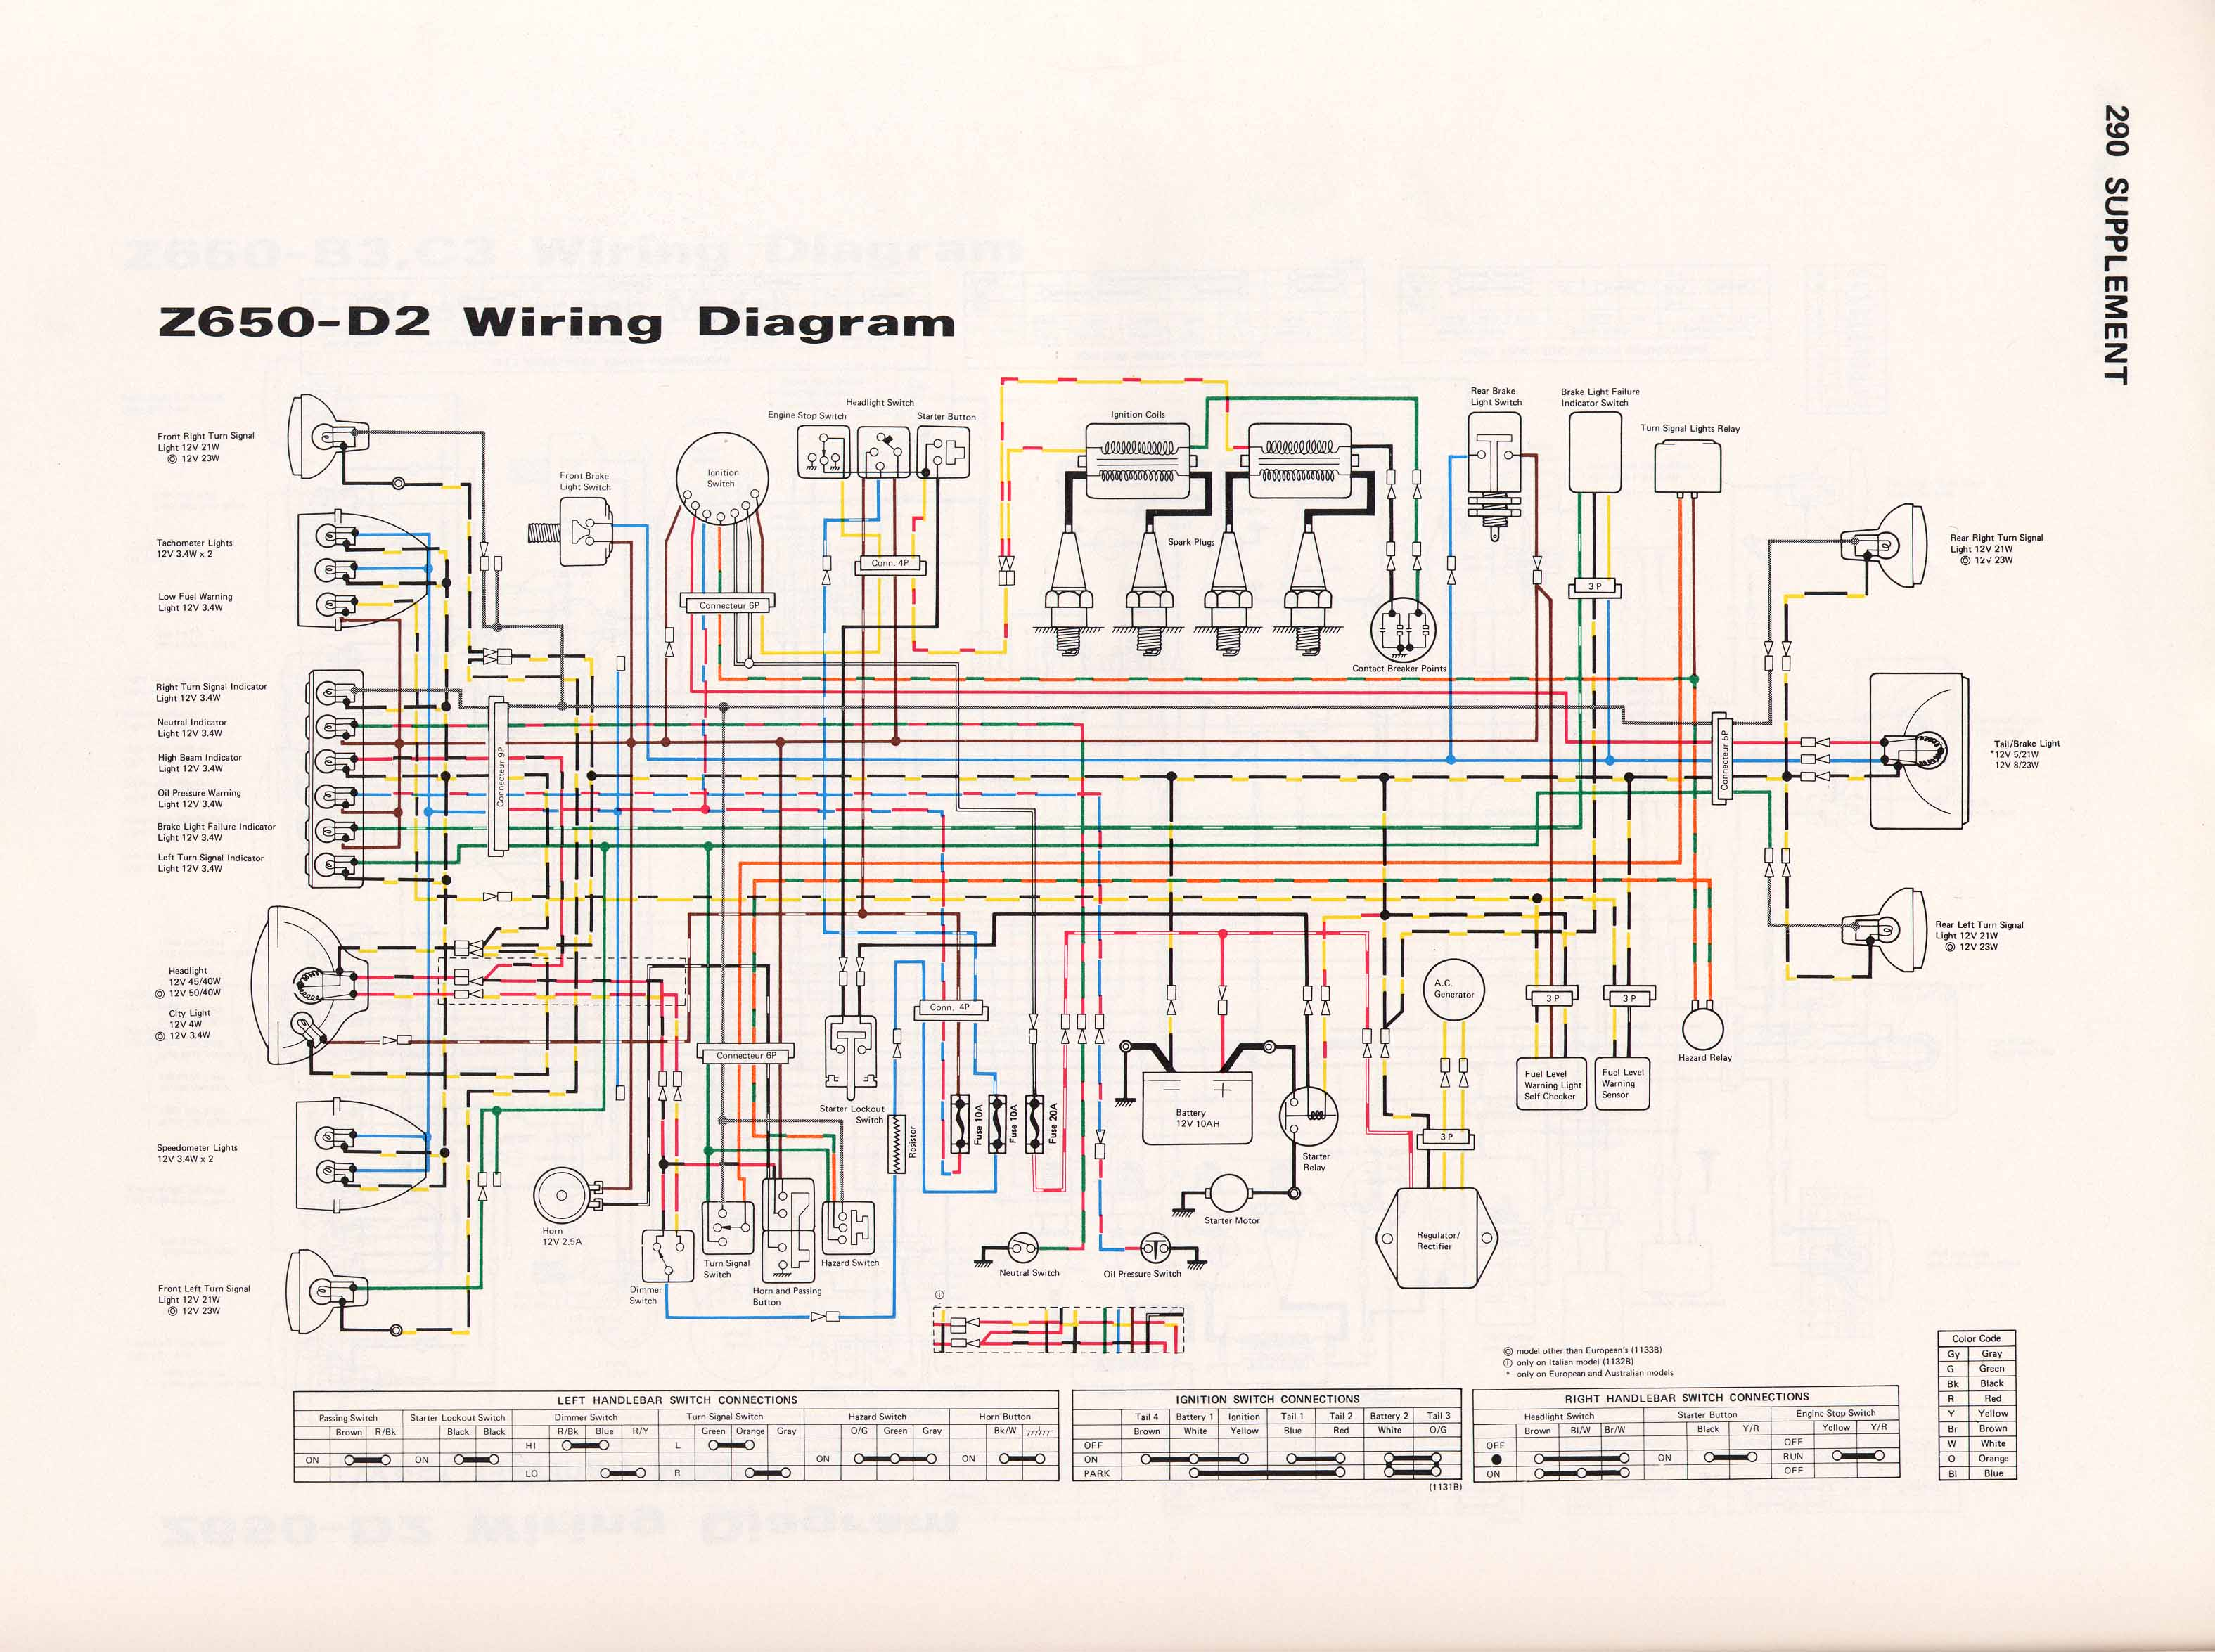 Z650 D2 kz650 info wiring diagrams 1978 kz650 wiring harness at crackthecode.co